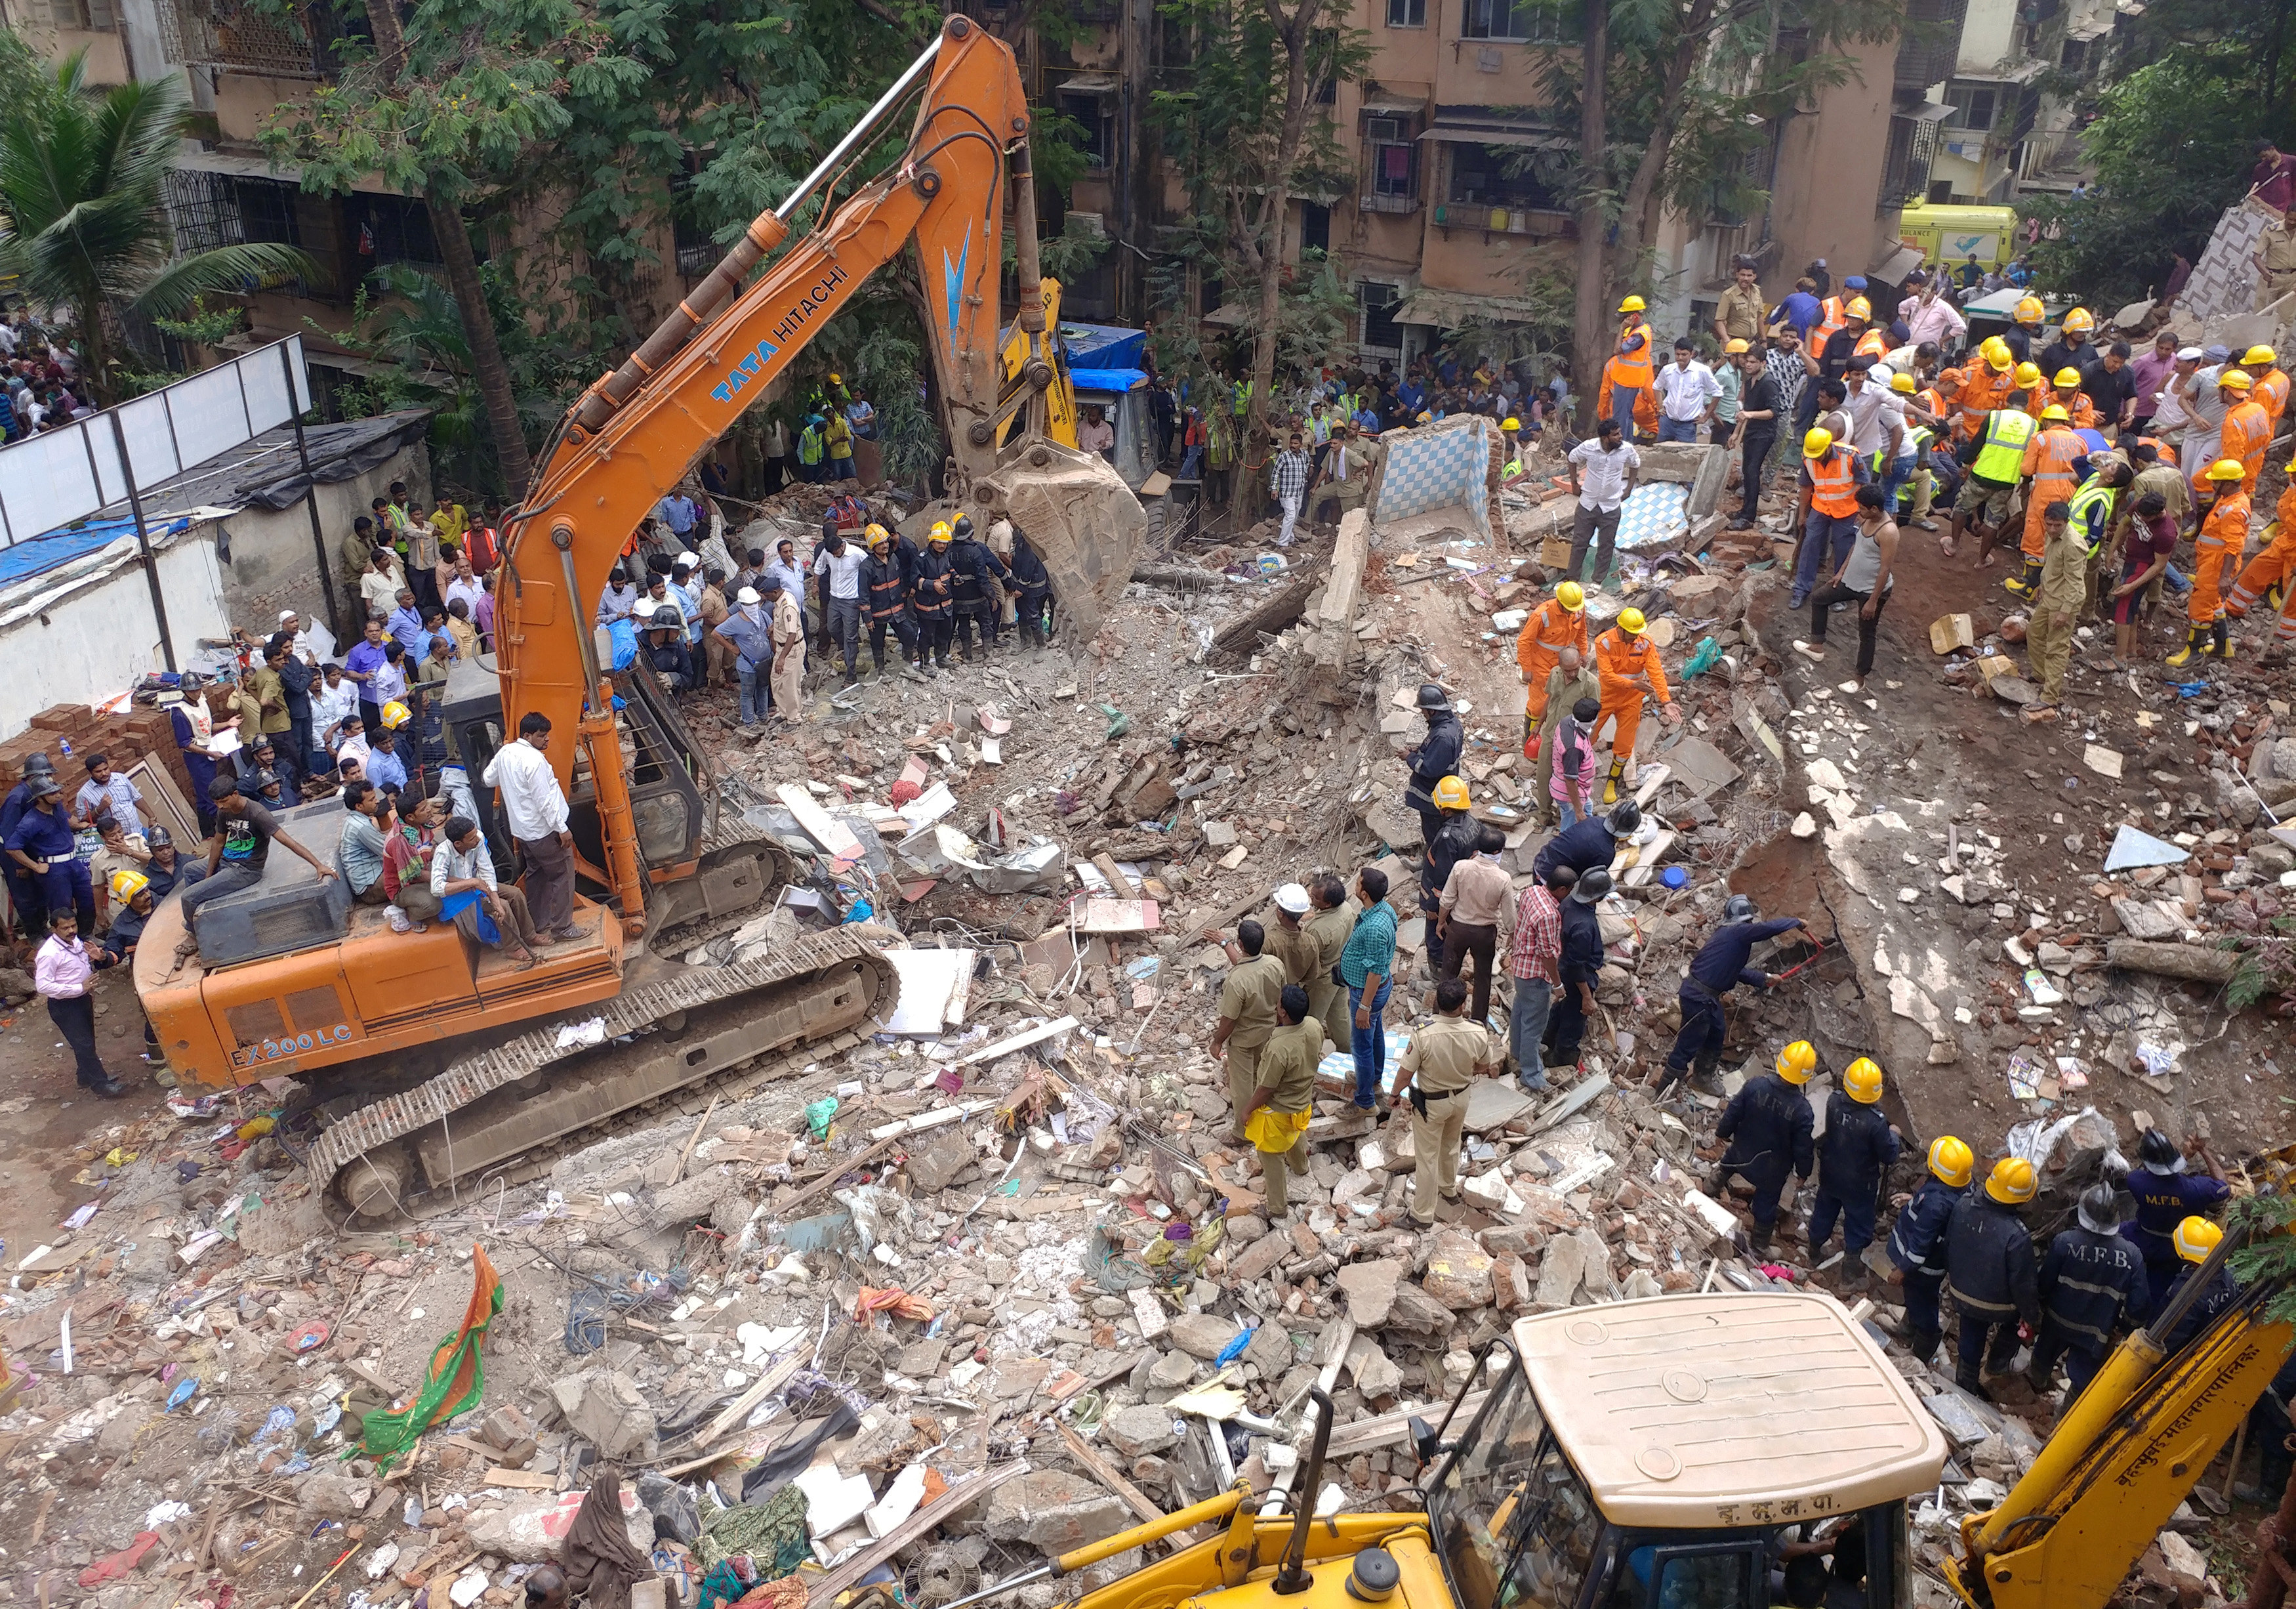 Firefighters and rescue workers search for survivors at the site of a collapsed building in the suburbs of Mumbai, India July 25, 2017. Photo: Reuters